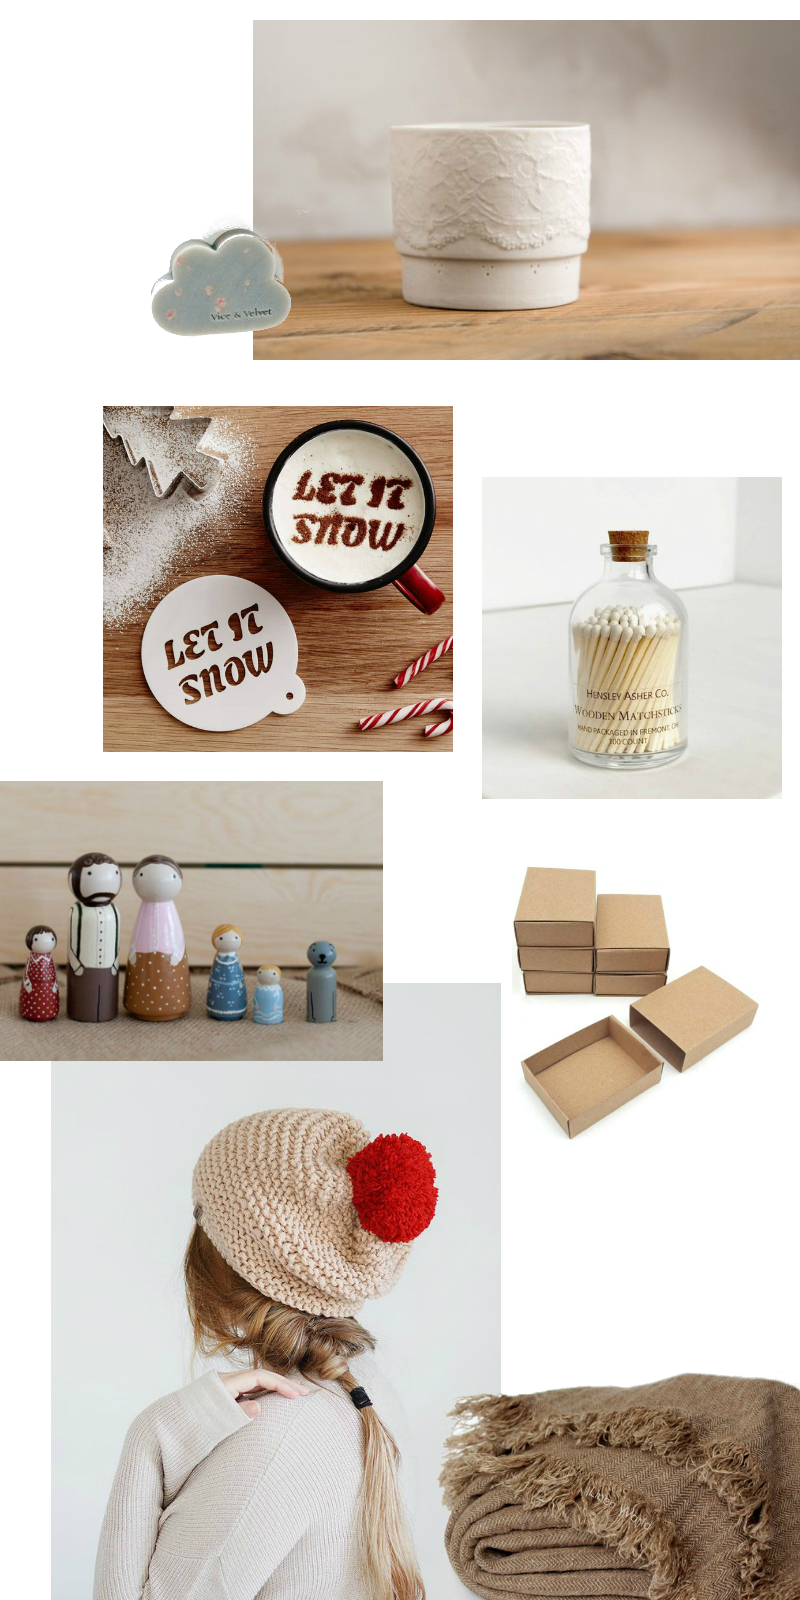 8 ETSY finds for a slow winter